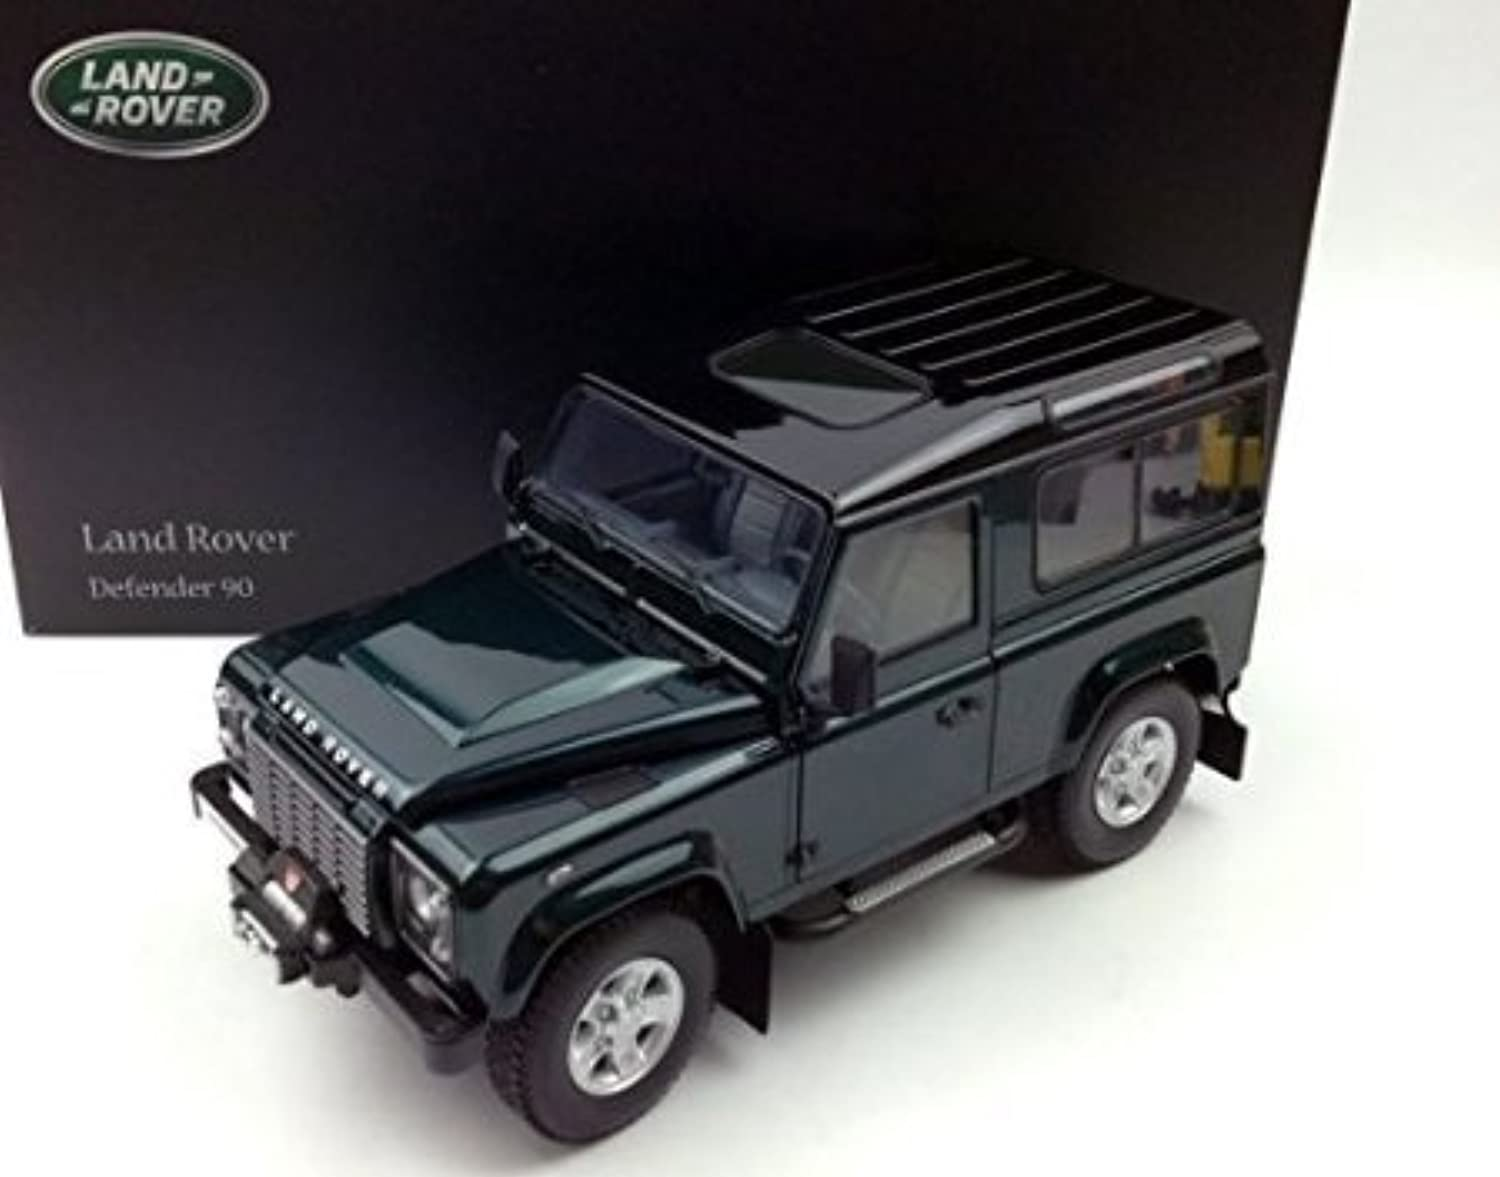 1984 LAND ROVER Defender 90 in Antree Grün by Kyosho in 1 18 Scale by Kyosho